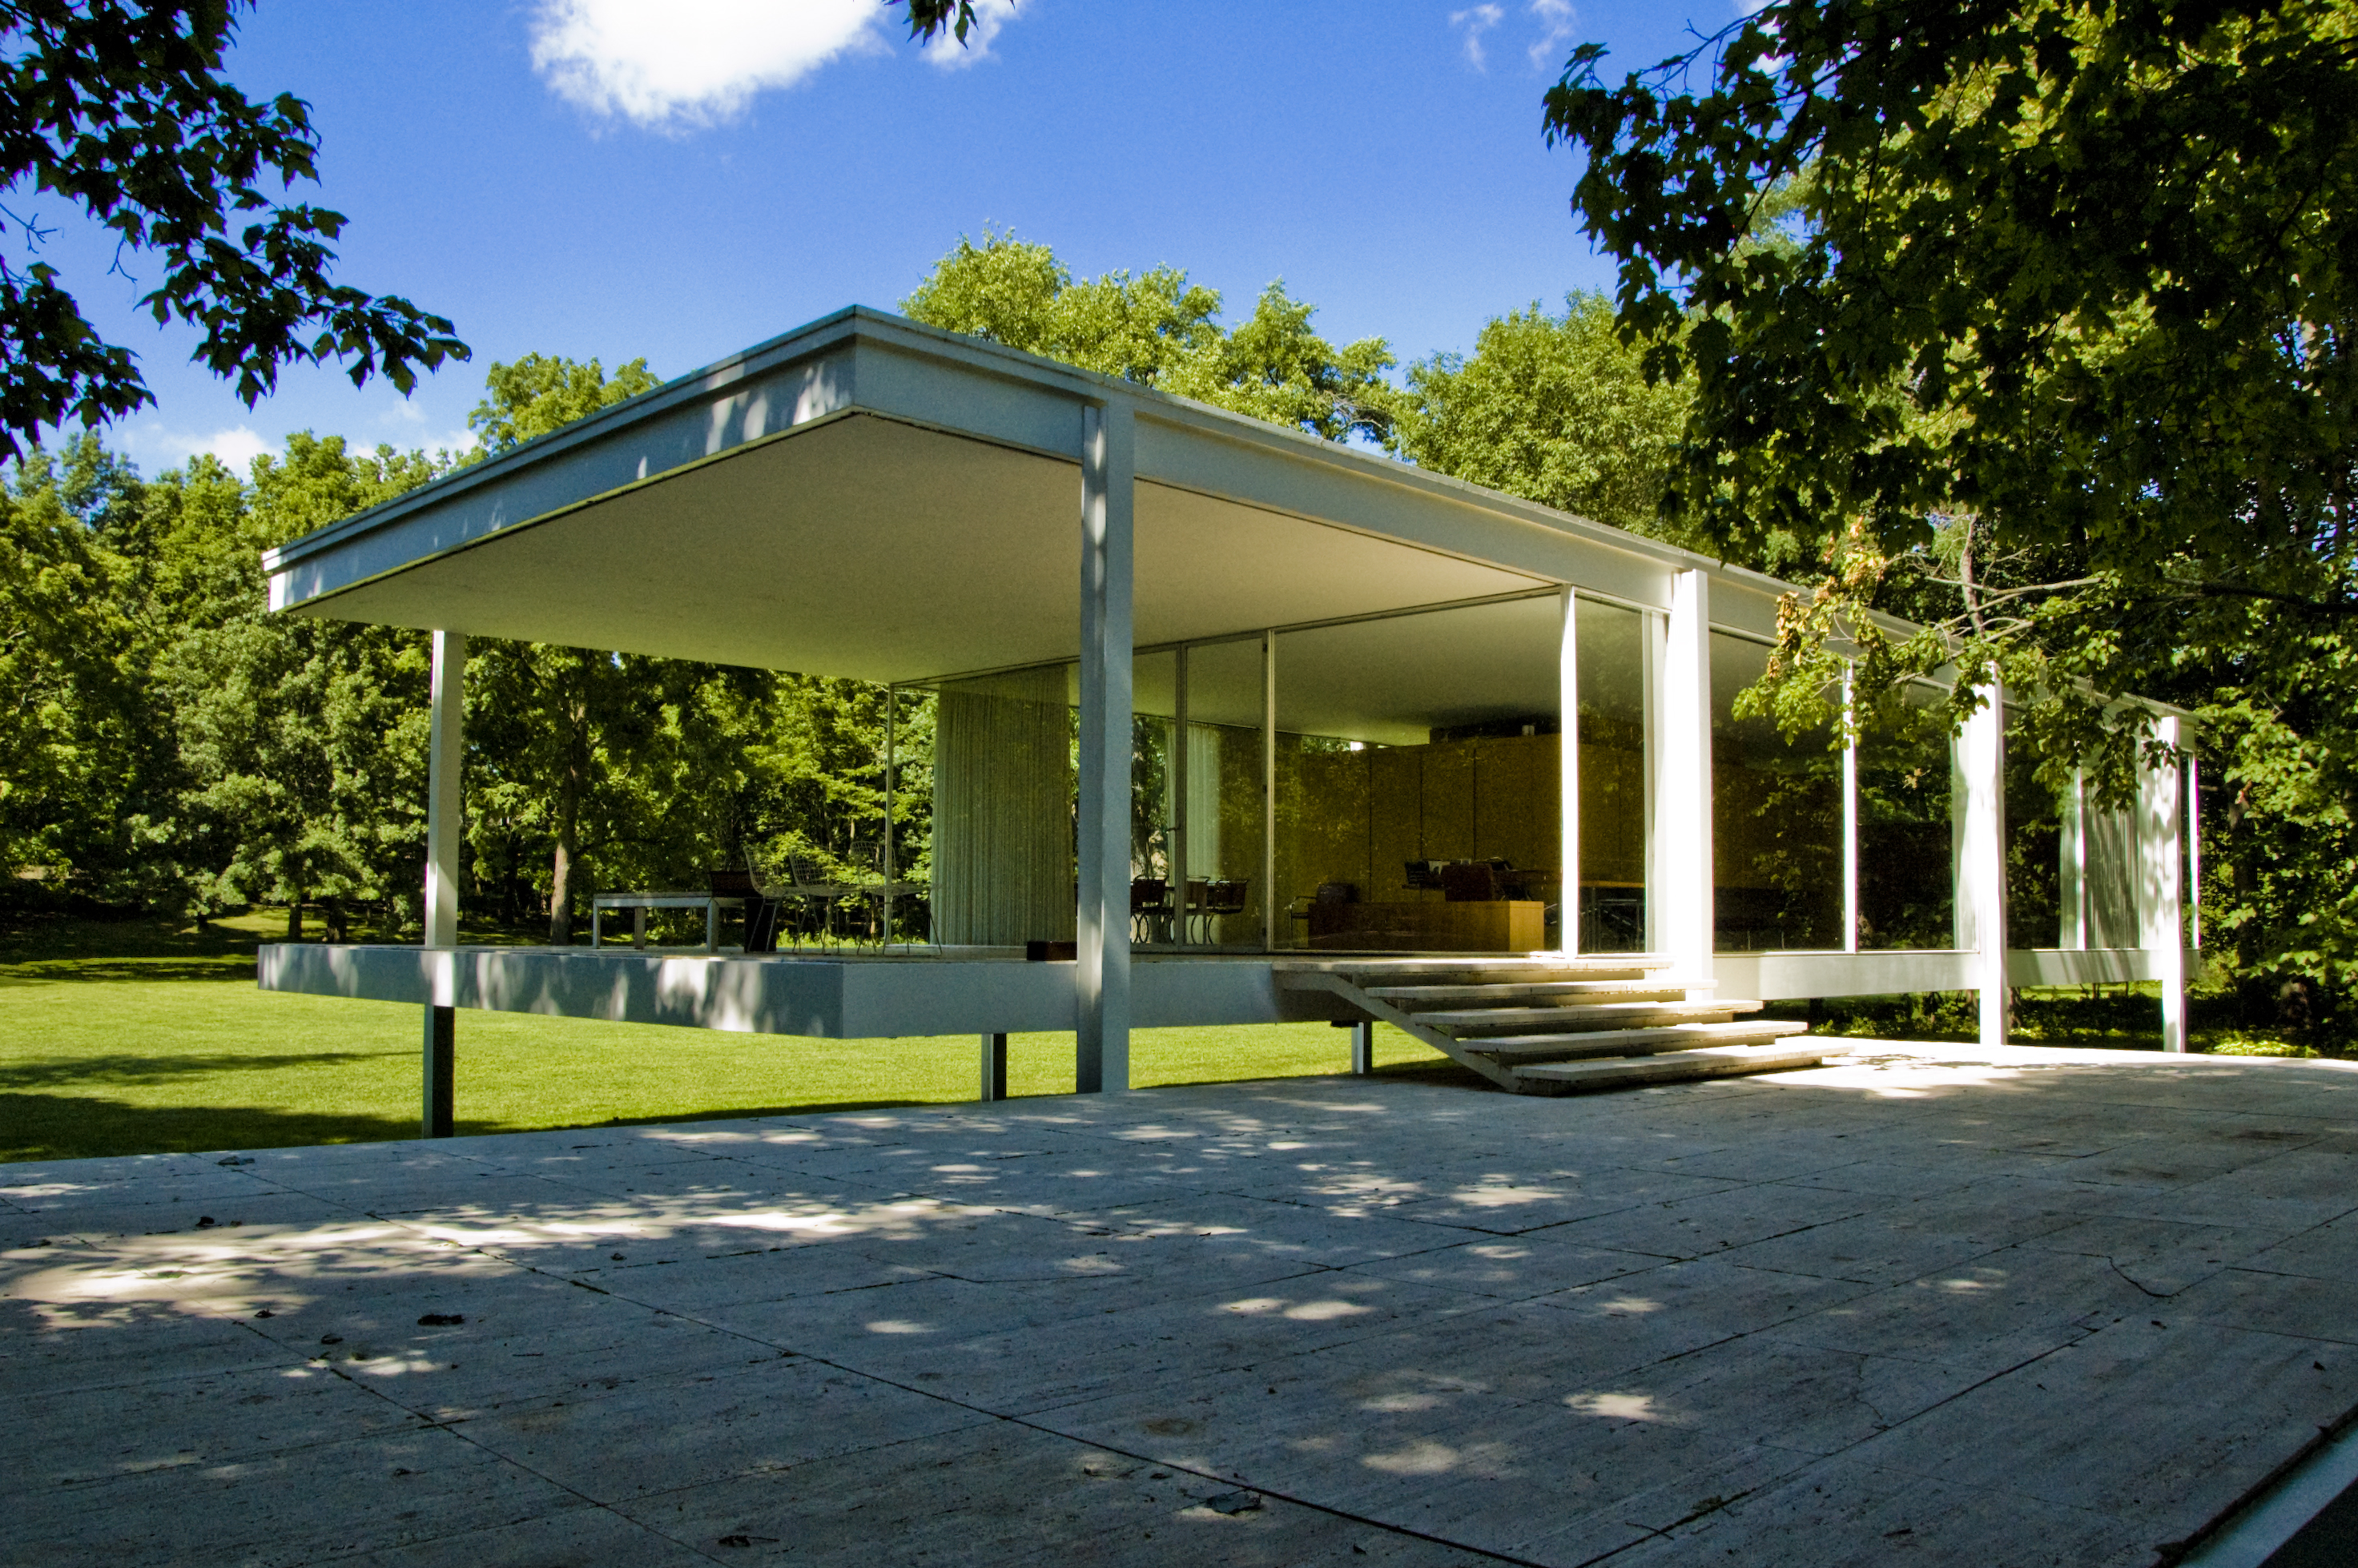 Farnsworth house by mies van der rohe exterior 8 jpg - Mies Van Der Rohe Farnsworth House December 8 2015 Nathan Lee Leave A Comment Farnsworthhouse Mies 5